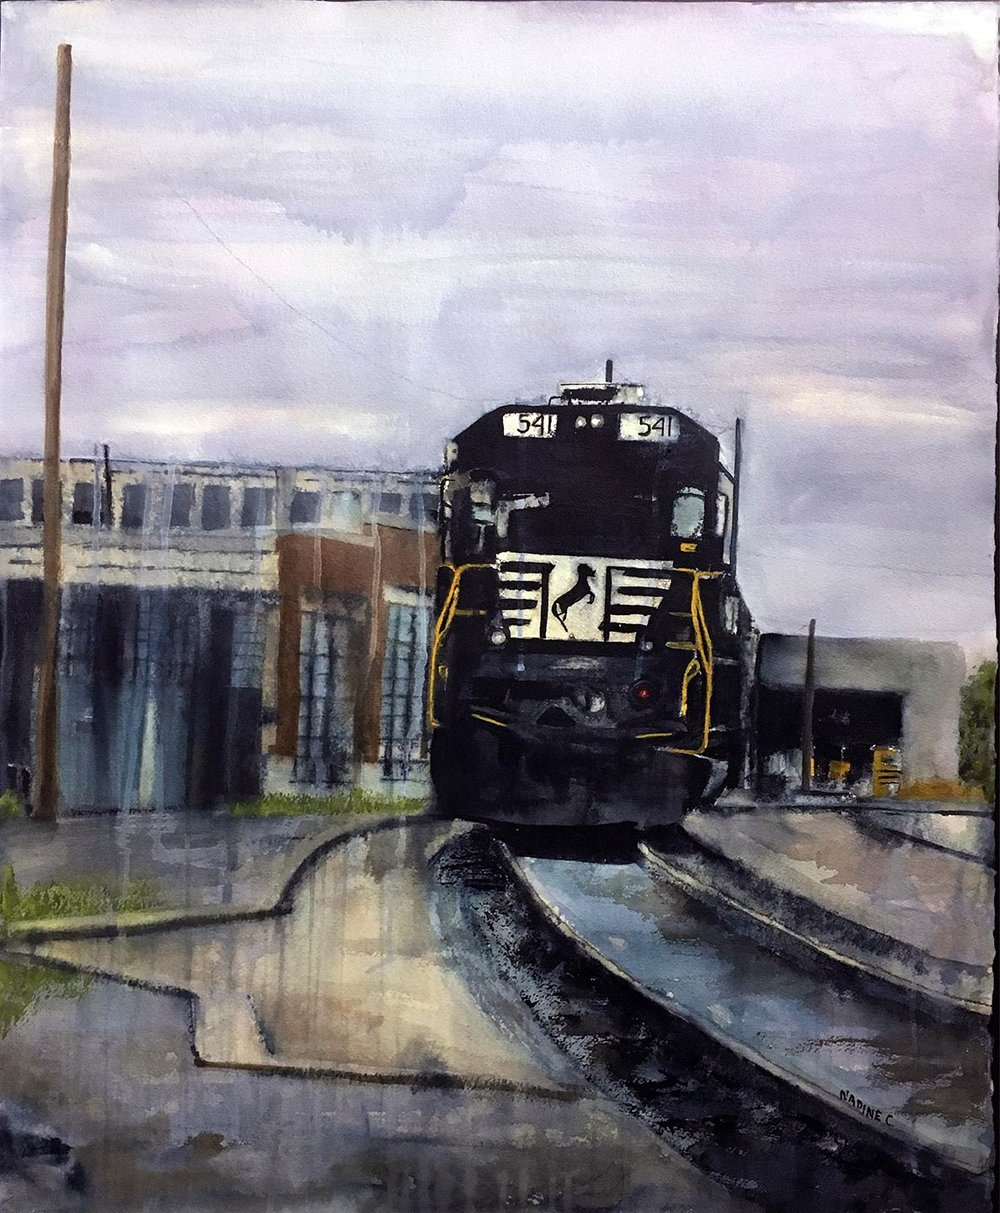 TRAIN IN THE YARDS